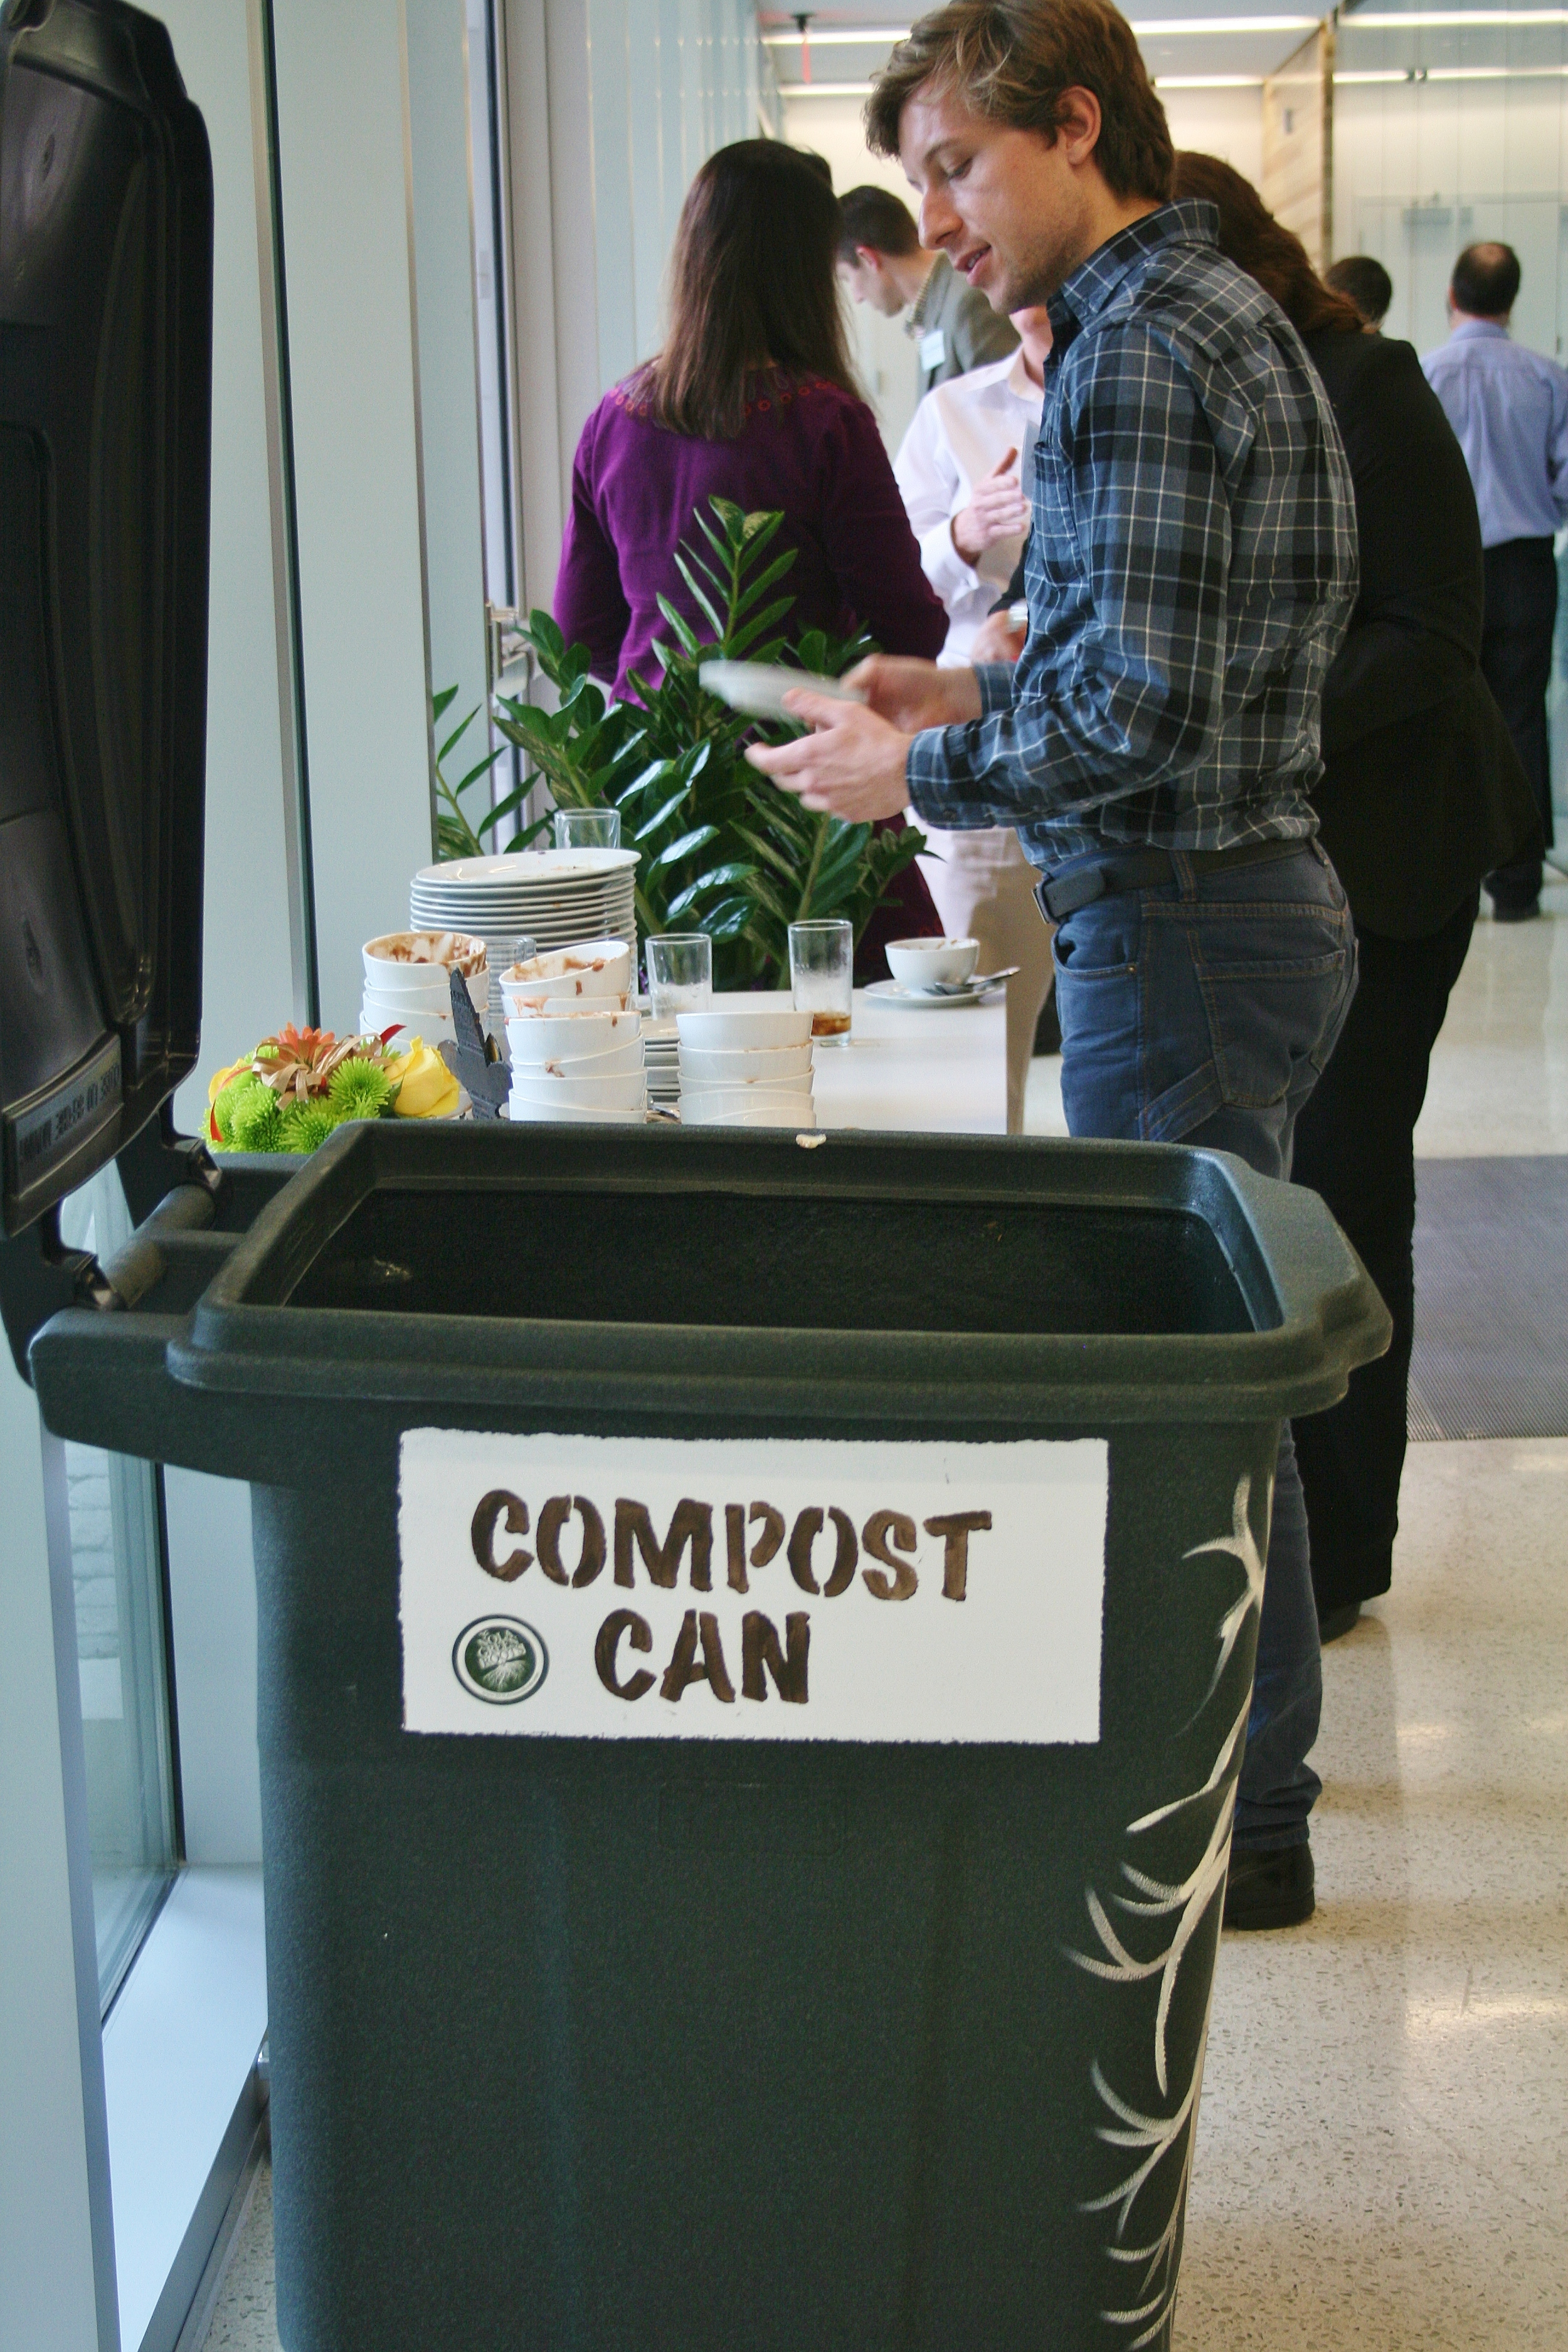 Doing our part for our conference on waste reduction.